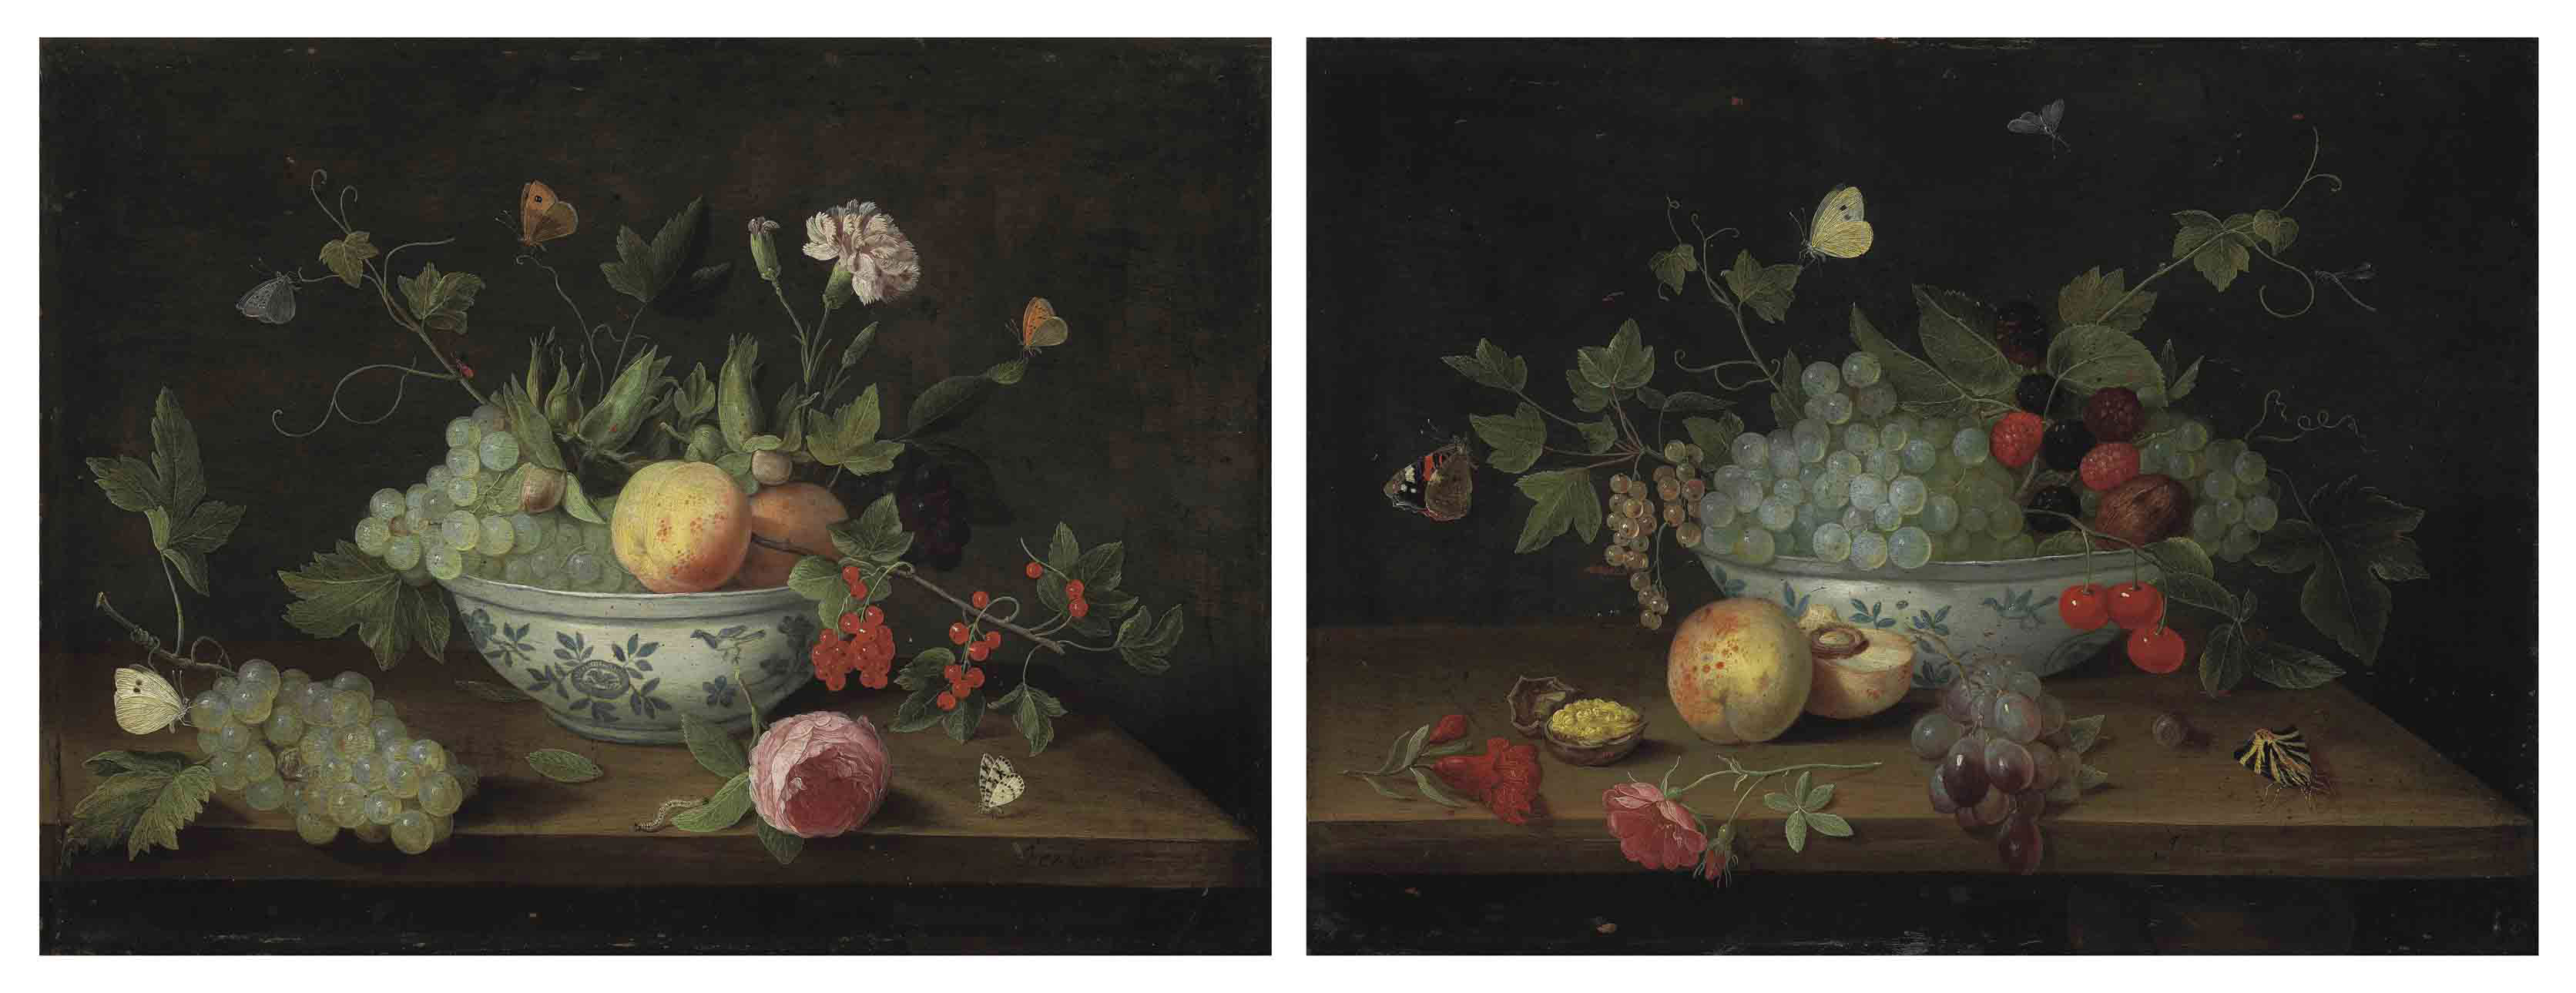 Grapes, peaches, cranberries, flowers and butterflies, in a porcelain bowl on a wooden ledge; and Grapes, blackberries, cherries, butterflies and a walnut in a porcelain bowl on a wooden ledge